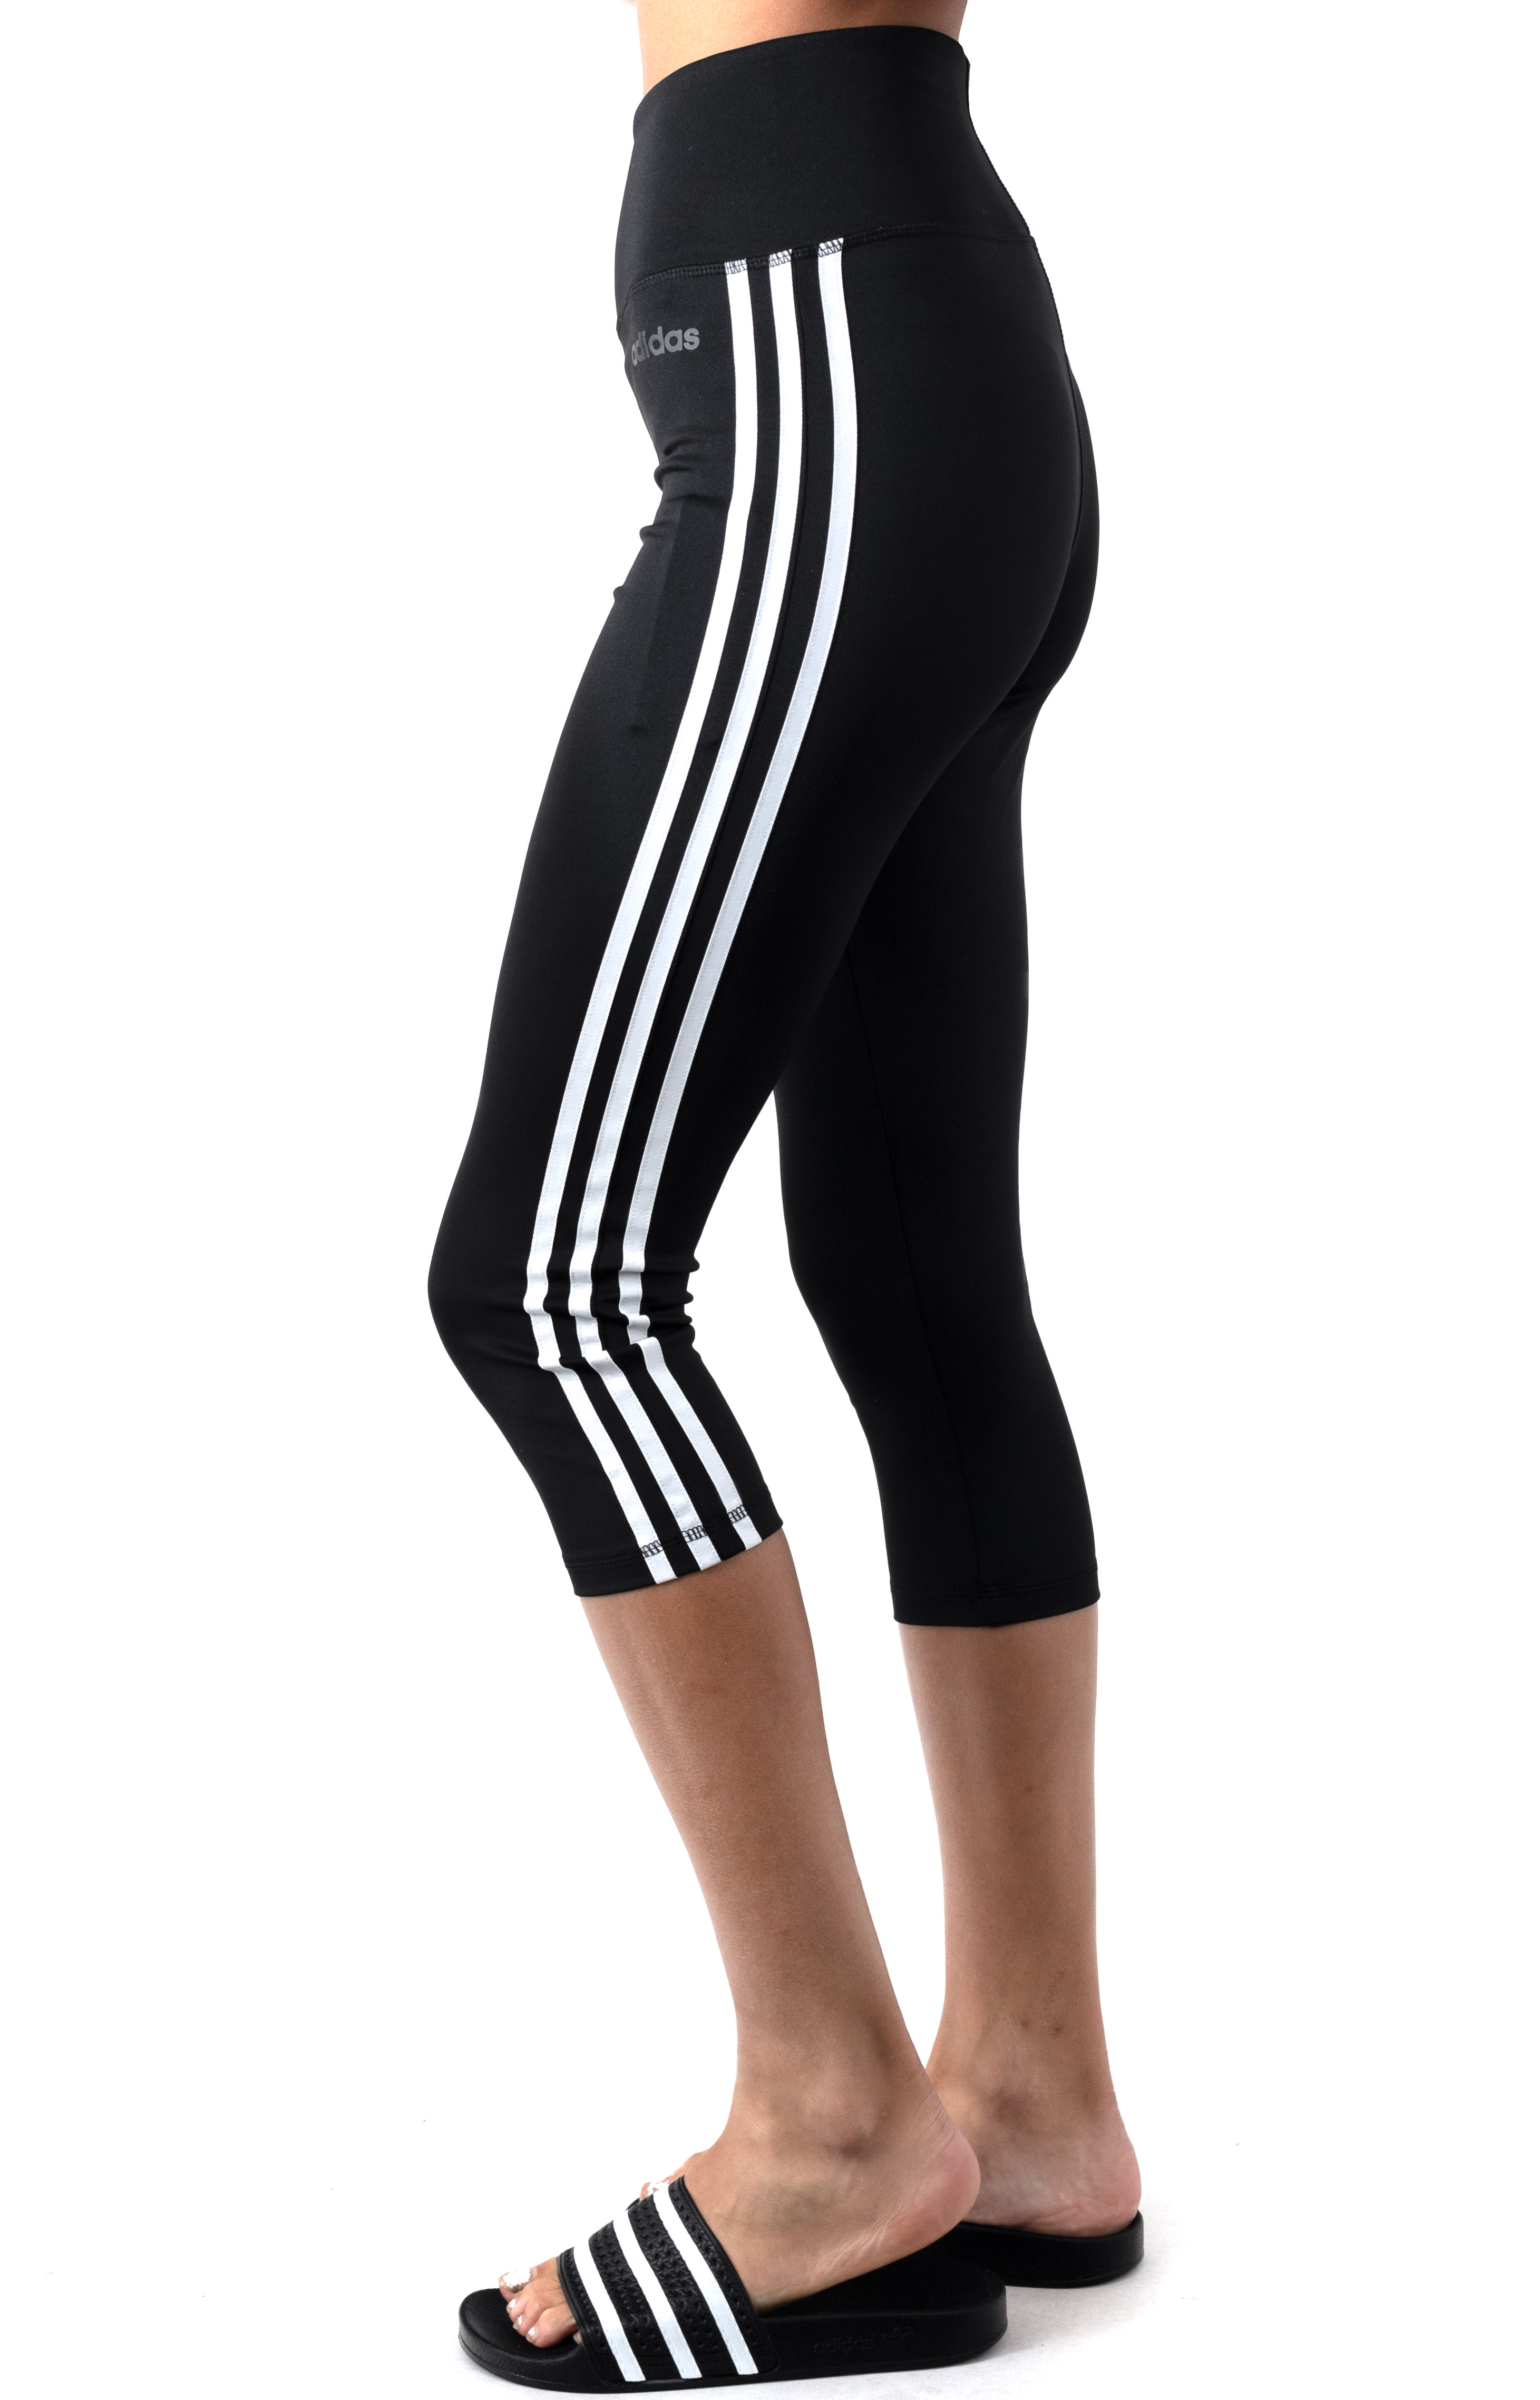 Design 2 Move 3 Stripes 3/4 Tights - Black/White